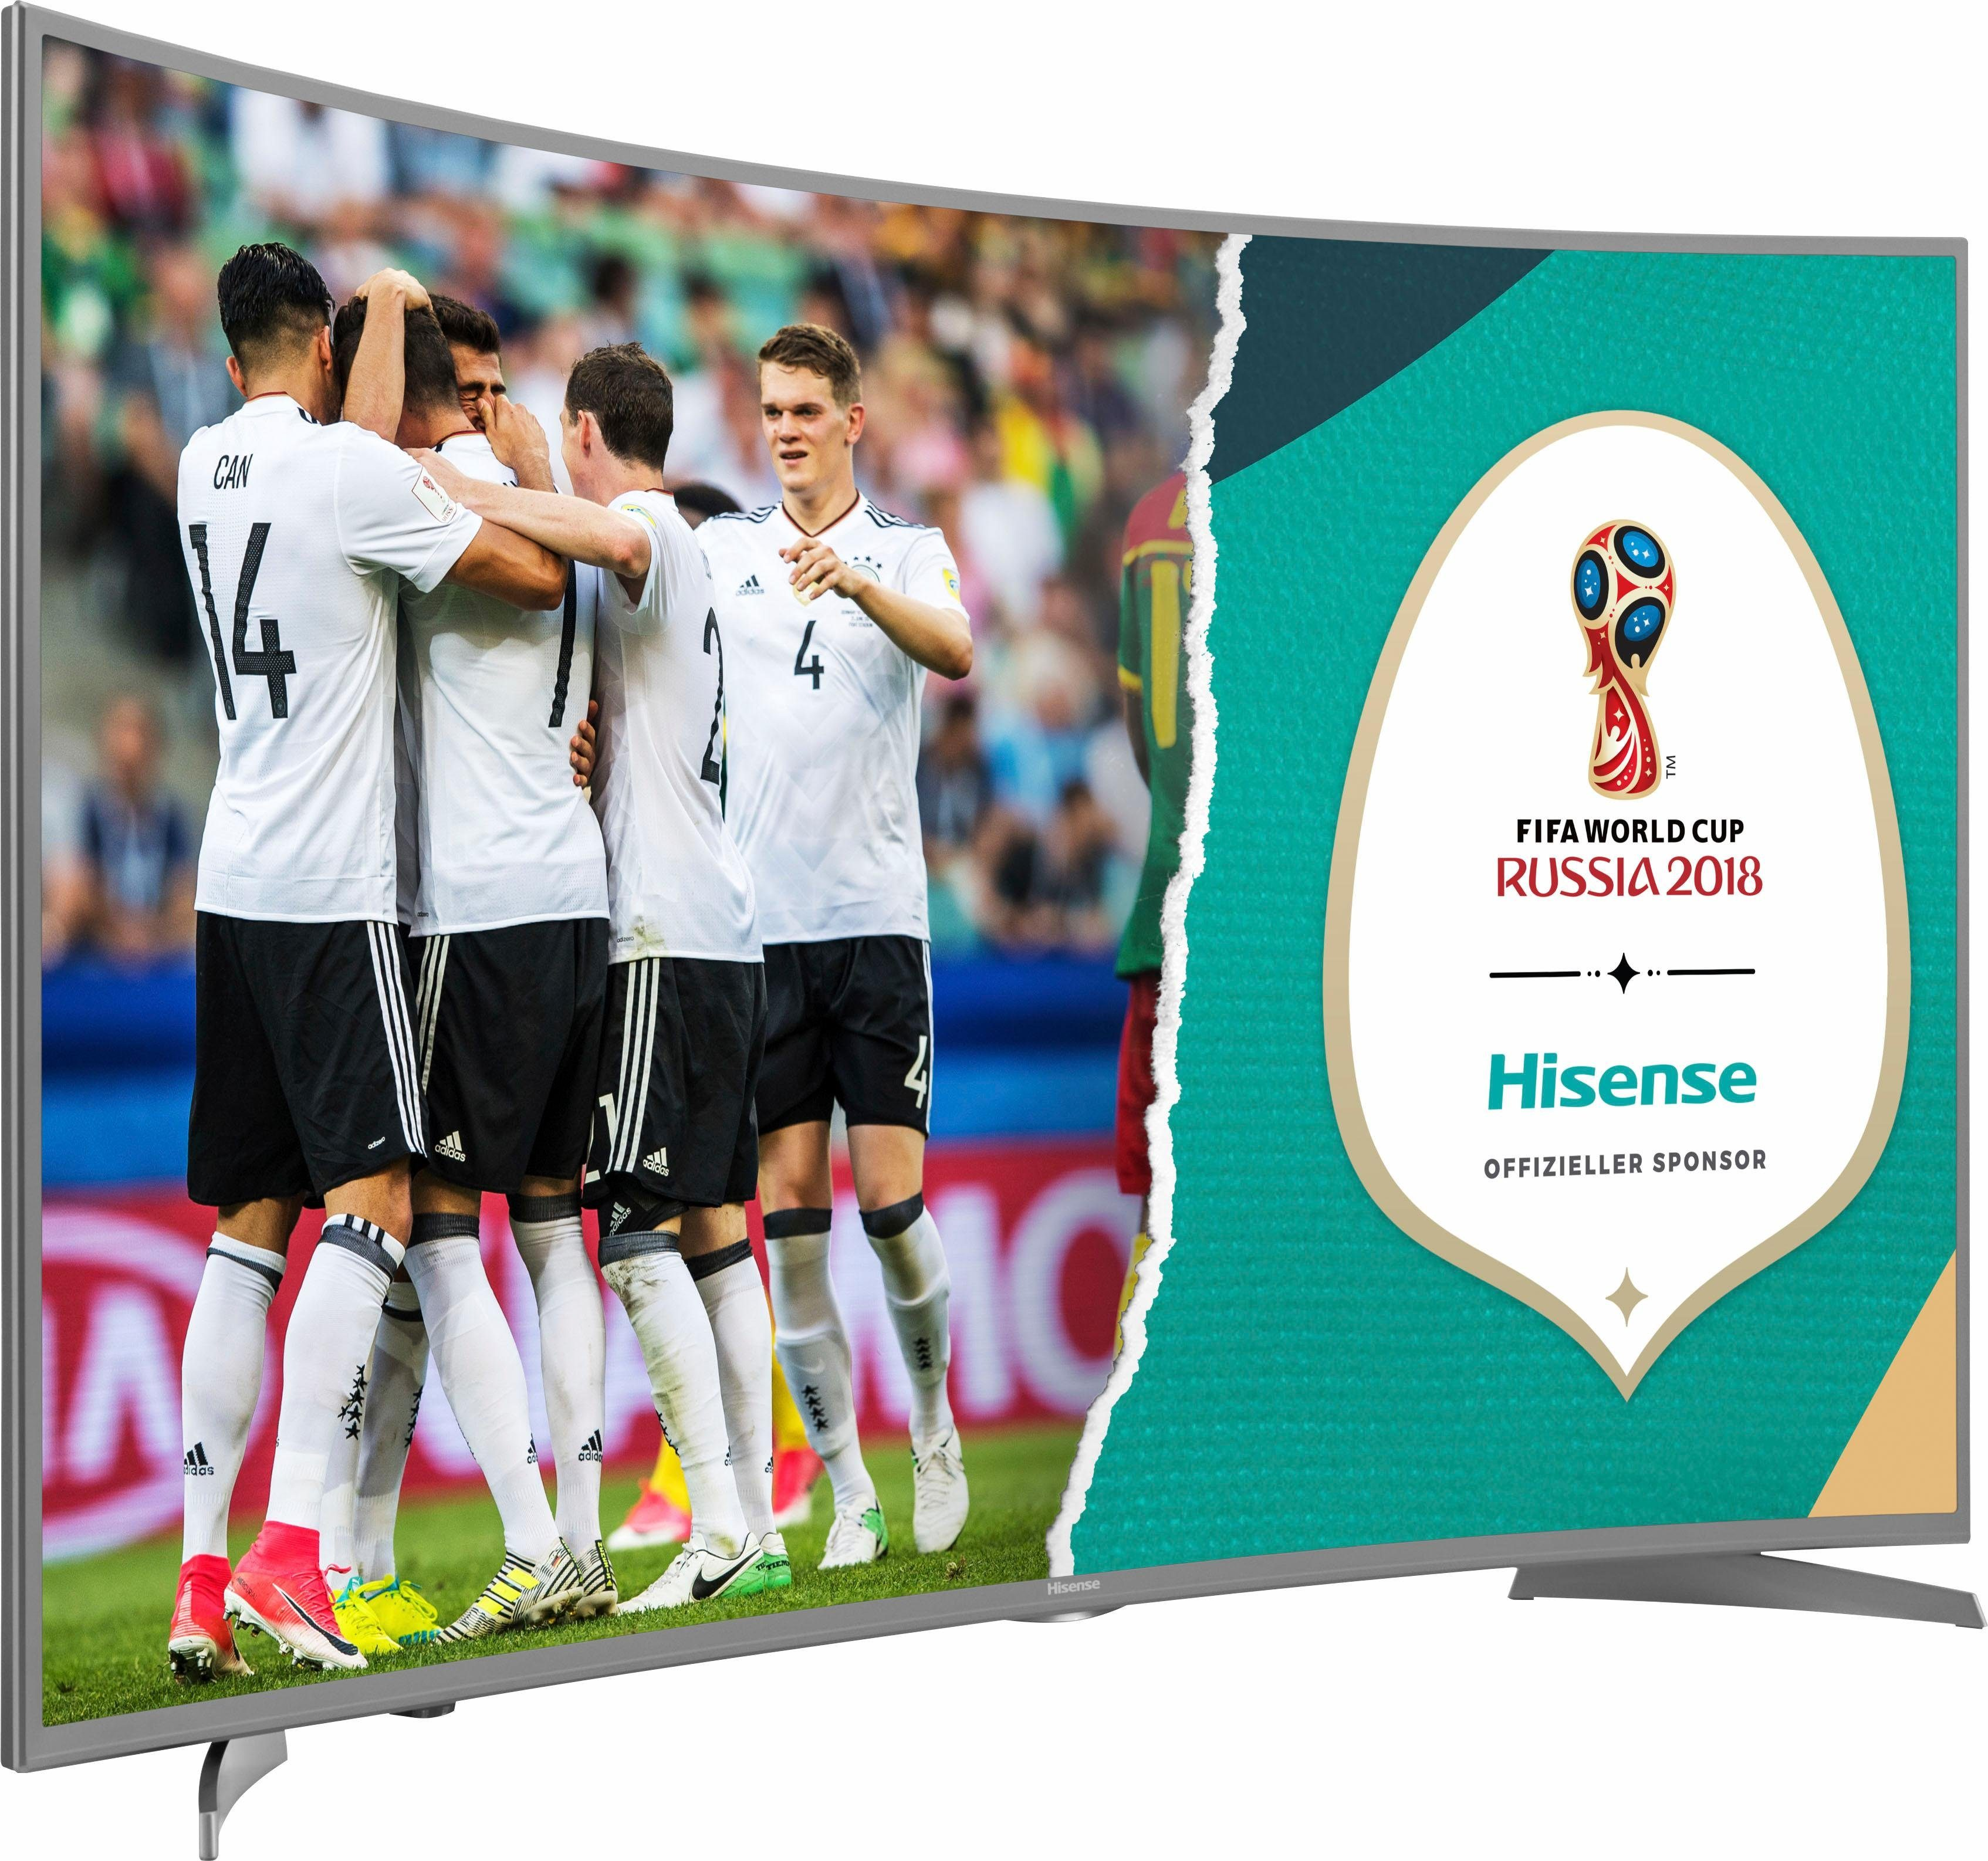 Hisense H55NEC6500 Curved-LED-Fernseher (55 Zoll, 4K Ultra HD, Smart-TV)